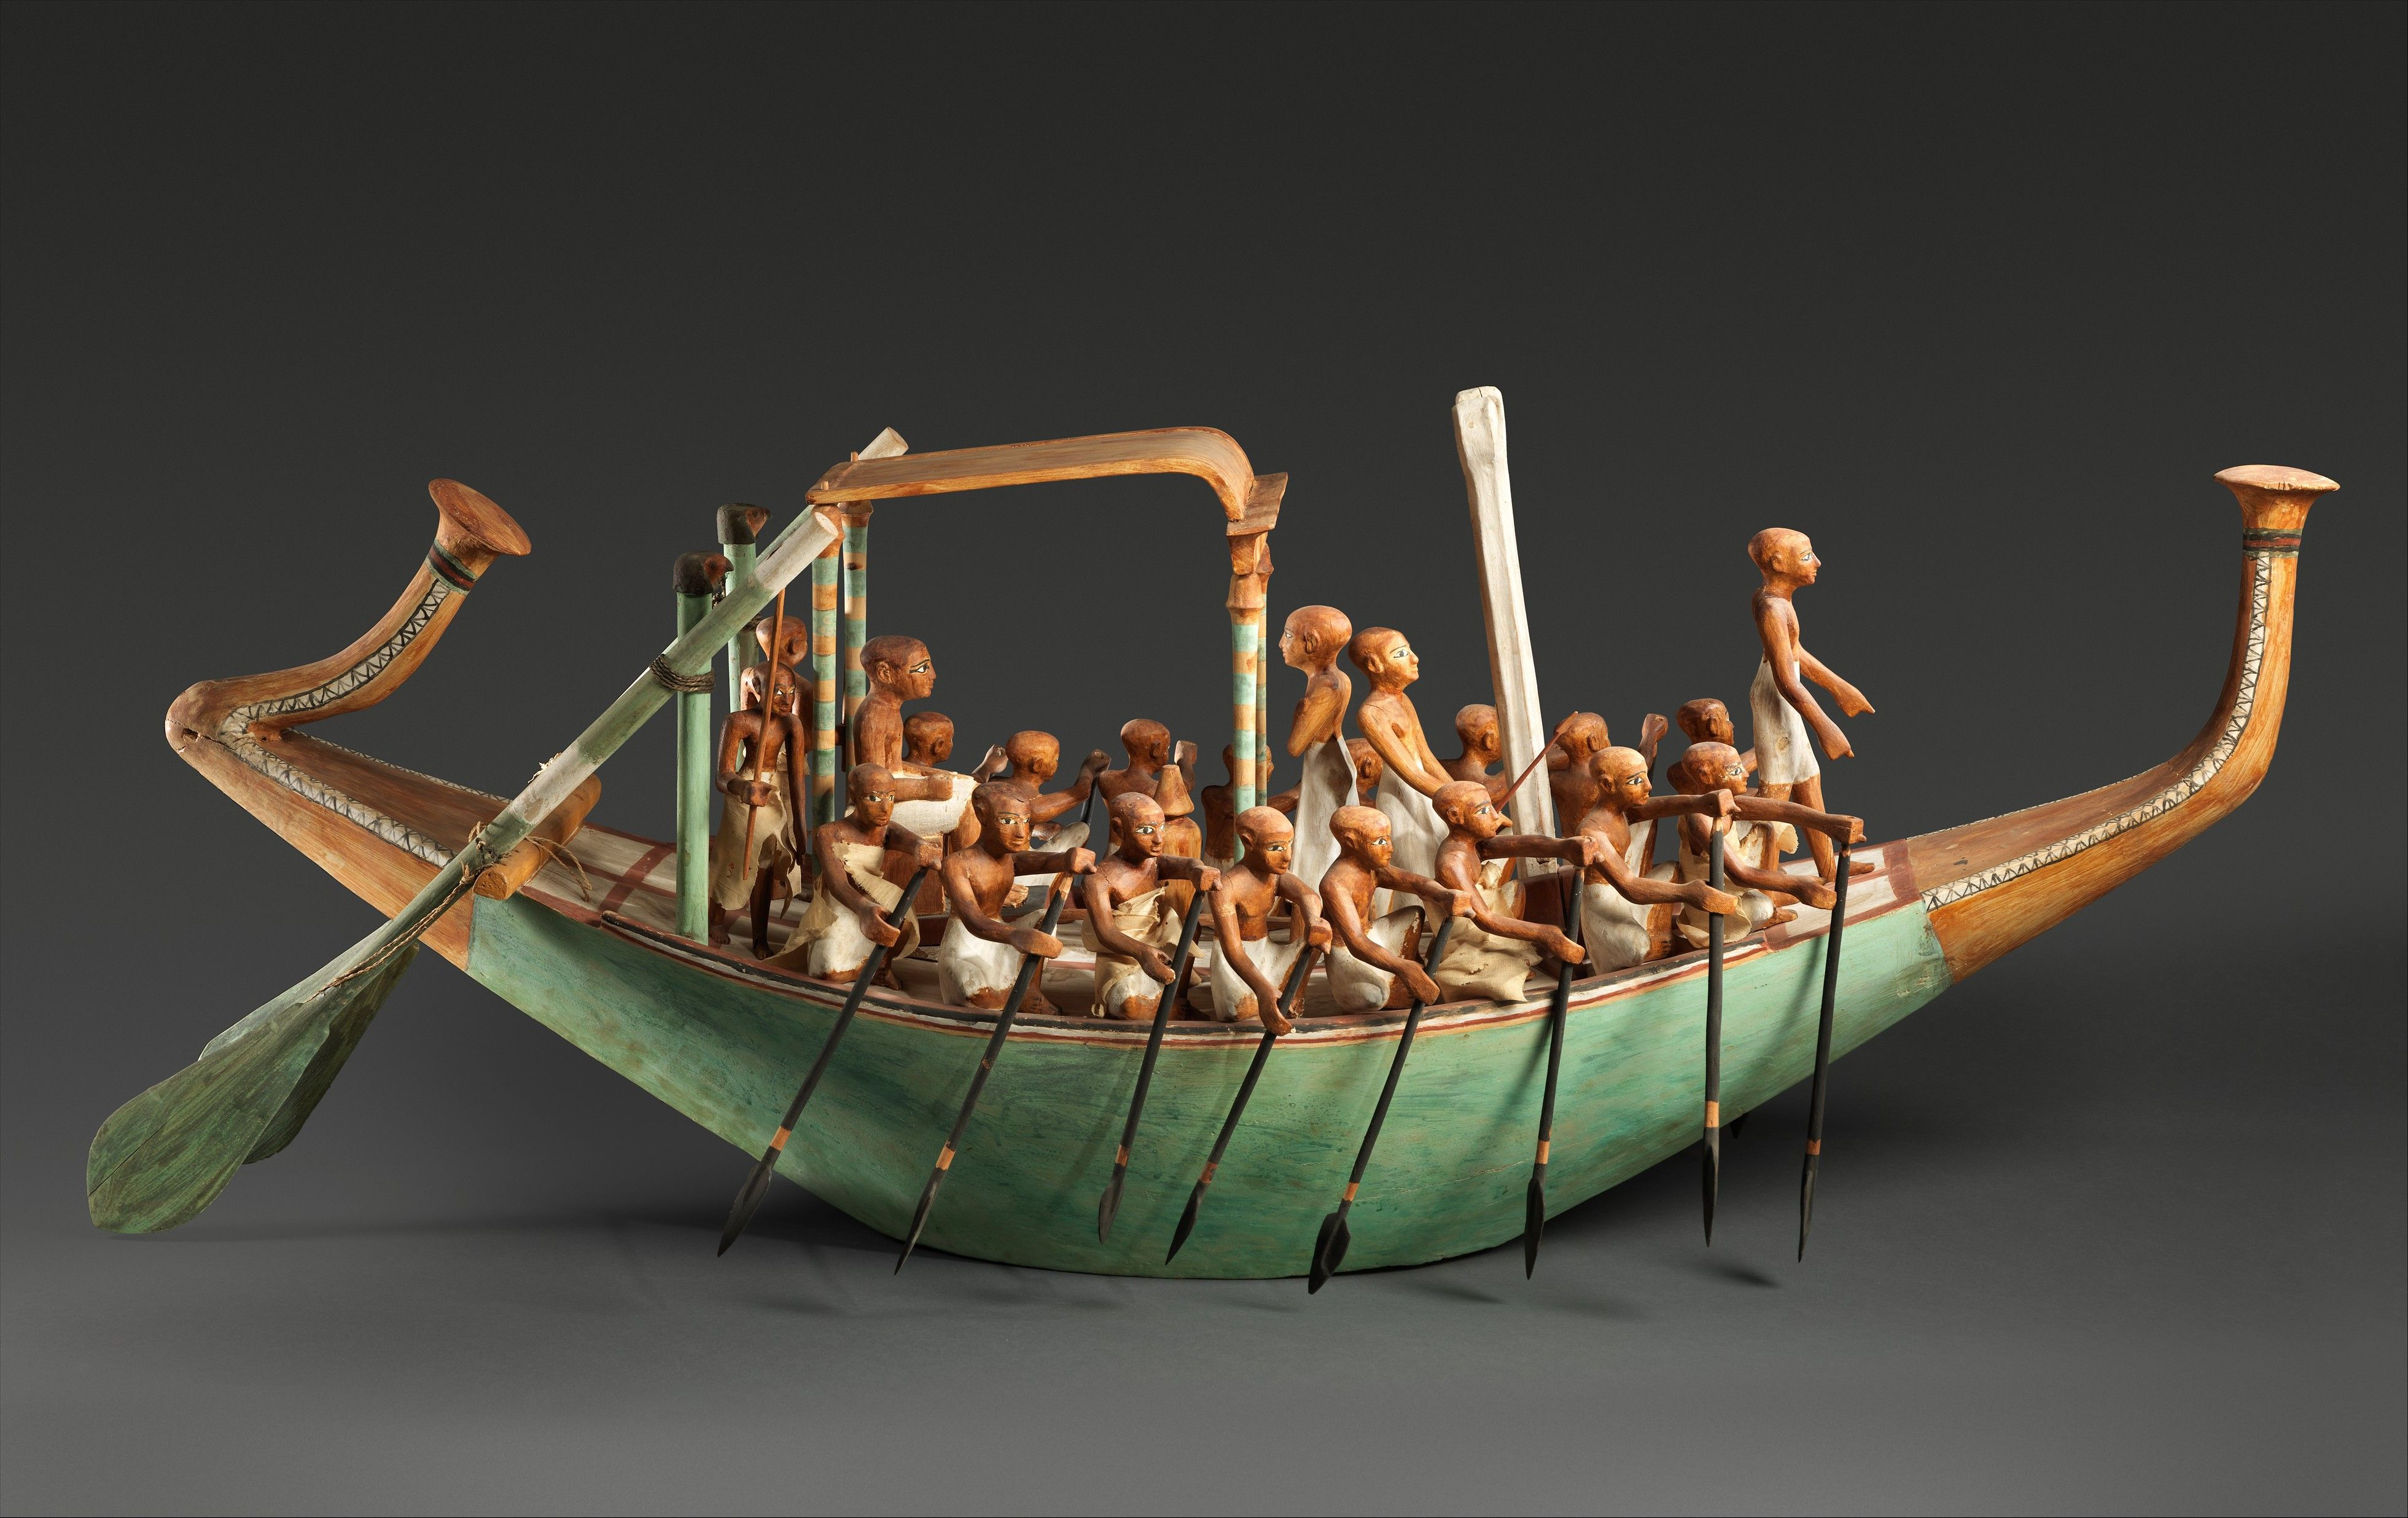 Works of Art at the MET <<>> Model Paddling Boat -Period: Middle Kingdom -Dynasty: Dynasty 12 -Reign: reign of Amenemhat I, early -Date: ca. 1981–1975 B.C. -Geography: From Egypt, Upper Egypt, Thebes, Southern Asasif, Tomb of Meketre (TT 280, MMA 1101), MMA excavations, 1920 -Medium: Wood, paint, plaster, linen twine and cloth -Credit Line: Rogers Fund and Edward S. Harkness Gift, 1920 -Elite Middle Kingdom tombs could contain model boats along with workshop models.